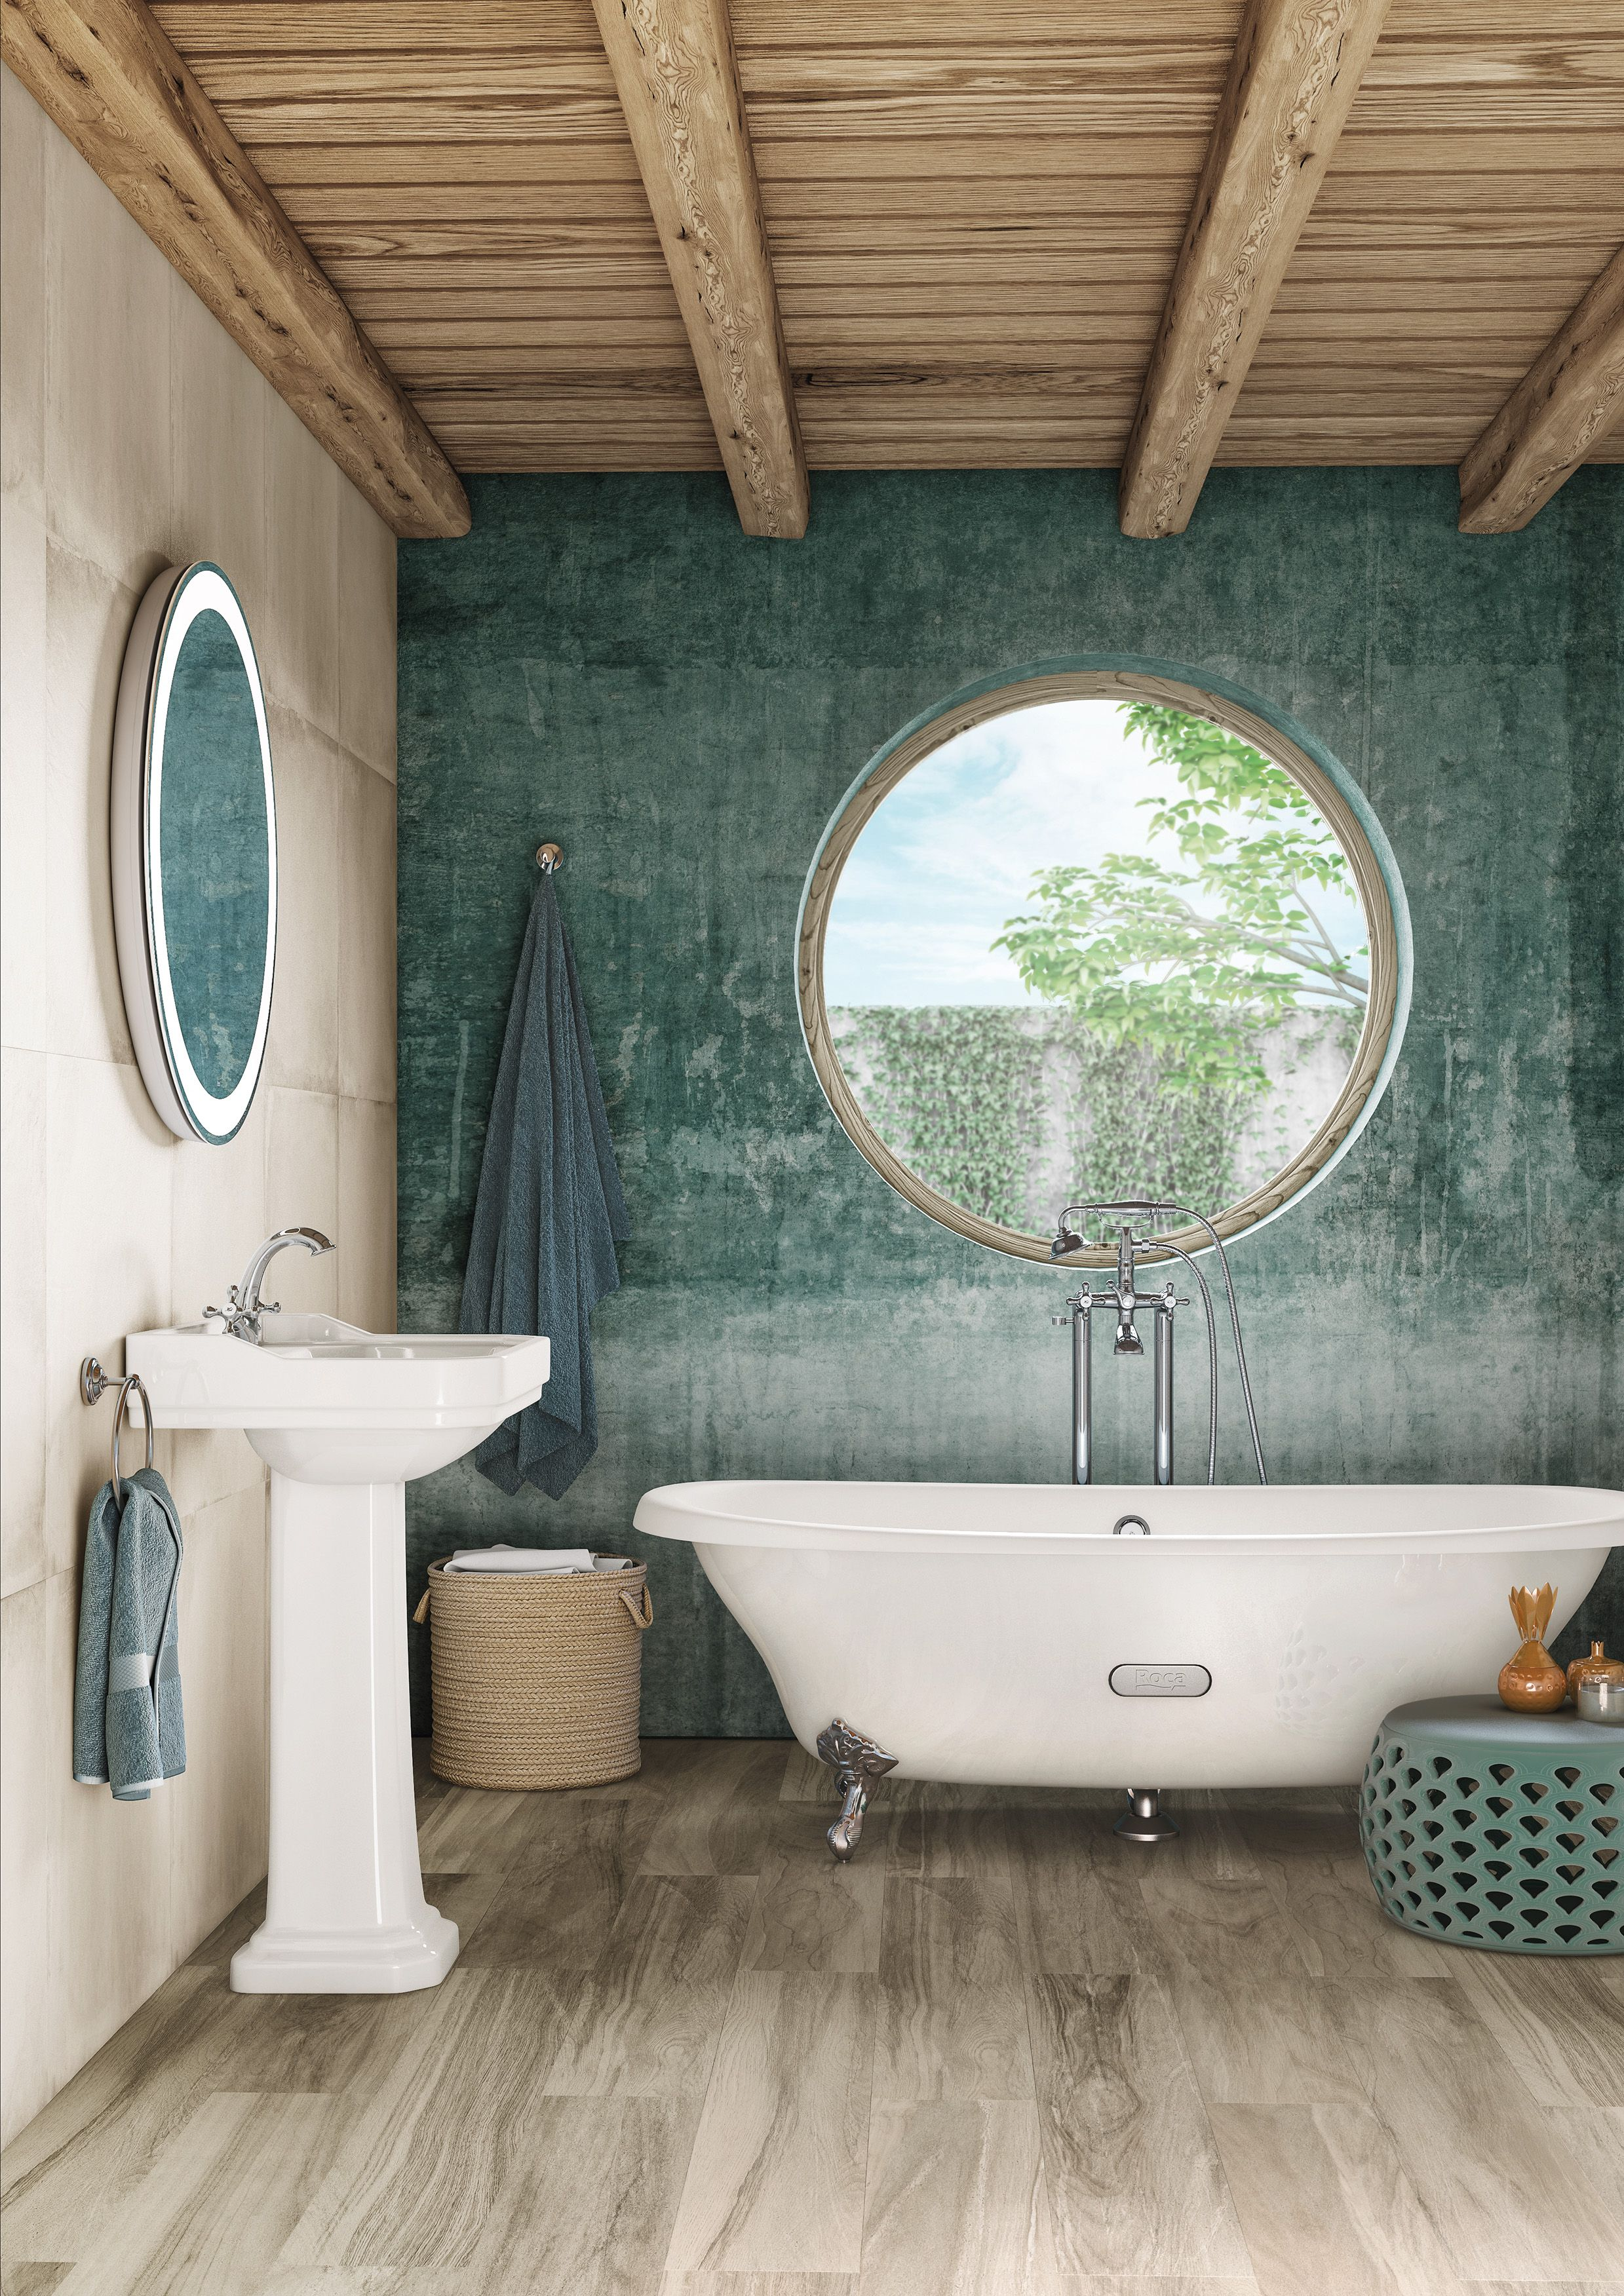 16 Country Bathroom Ideas To Inspire Your Decorating Choices on Rural Bathroom  id=16170